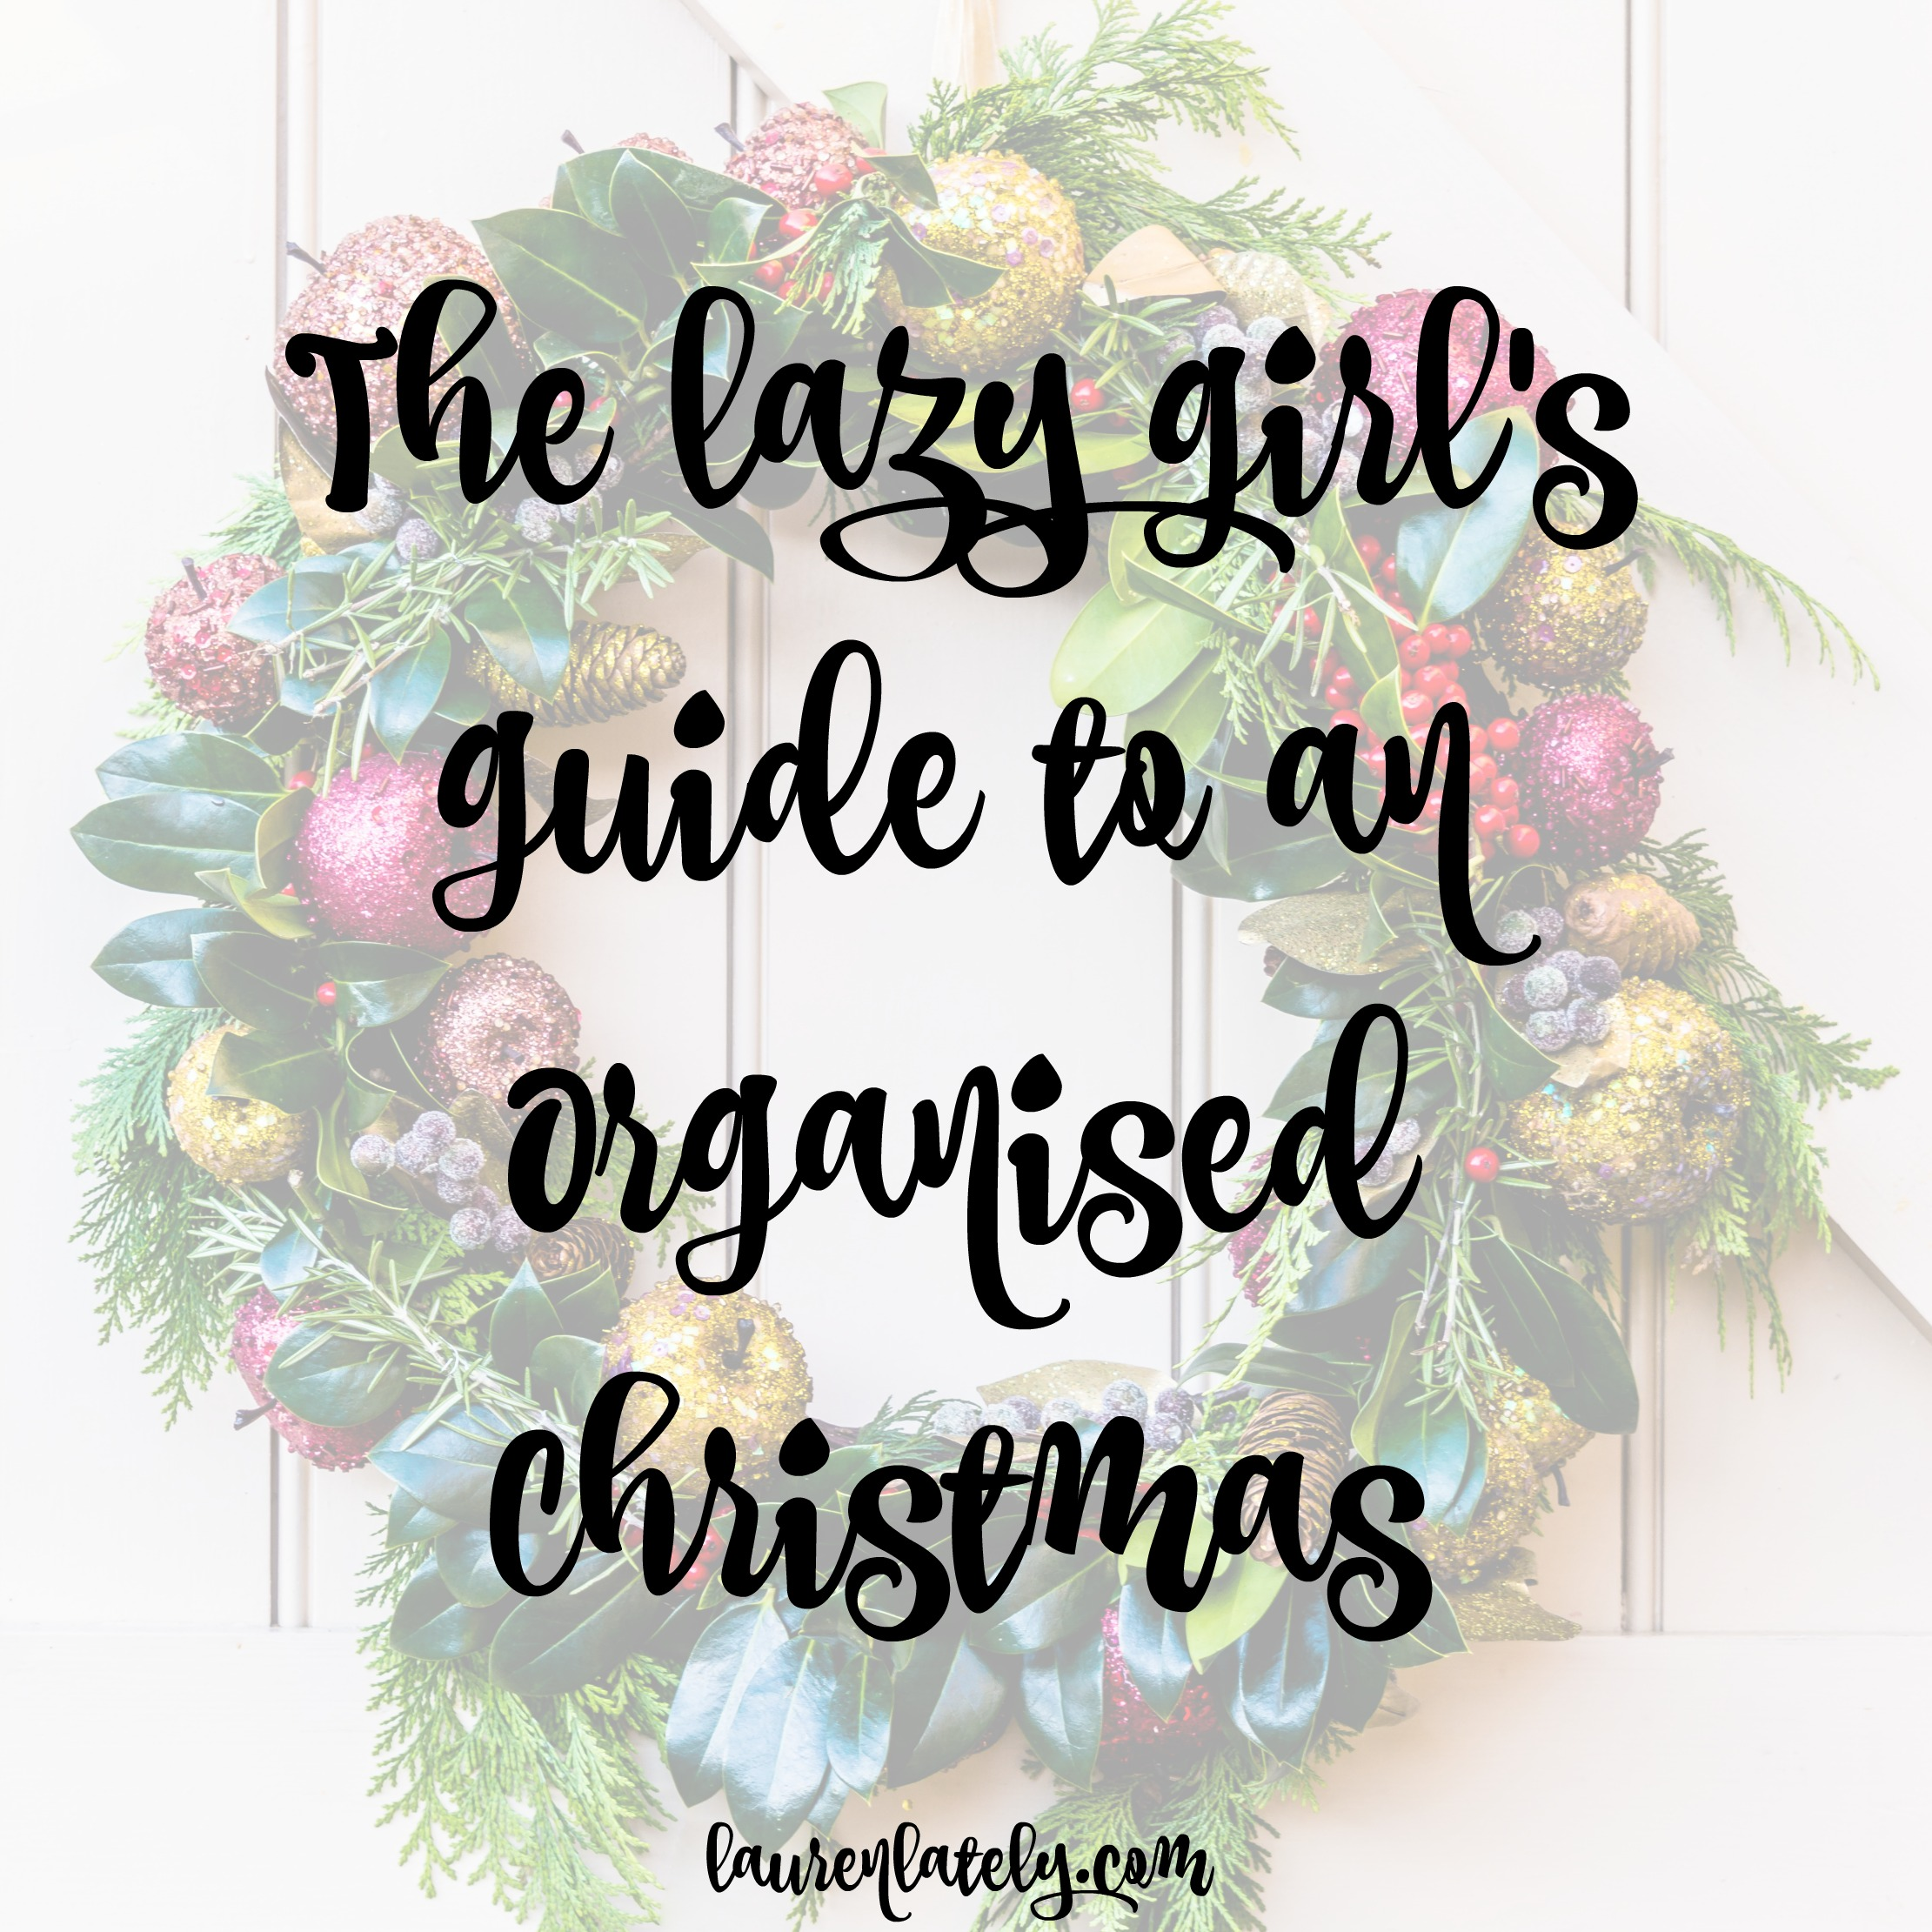 The lazy girl's guide to an organised Christmas